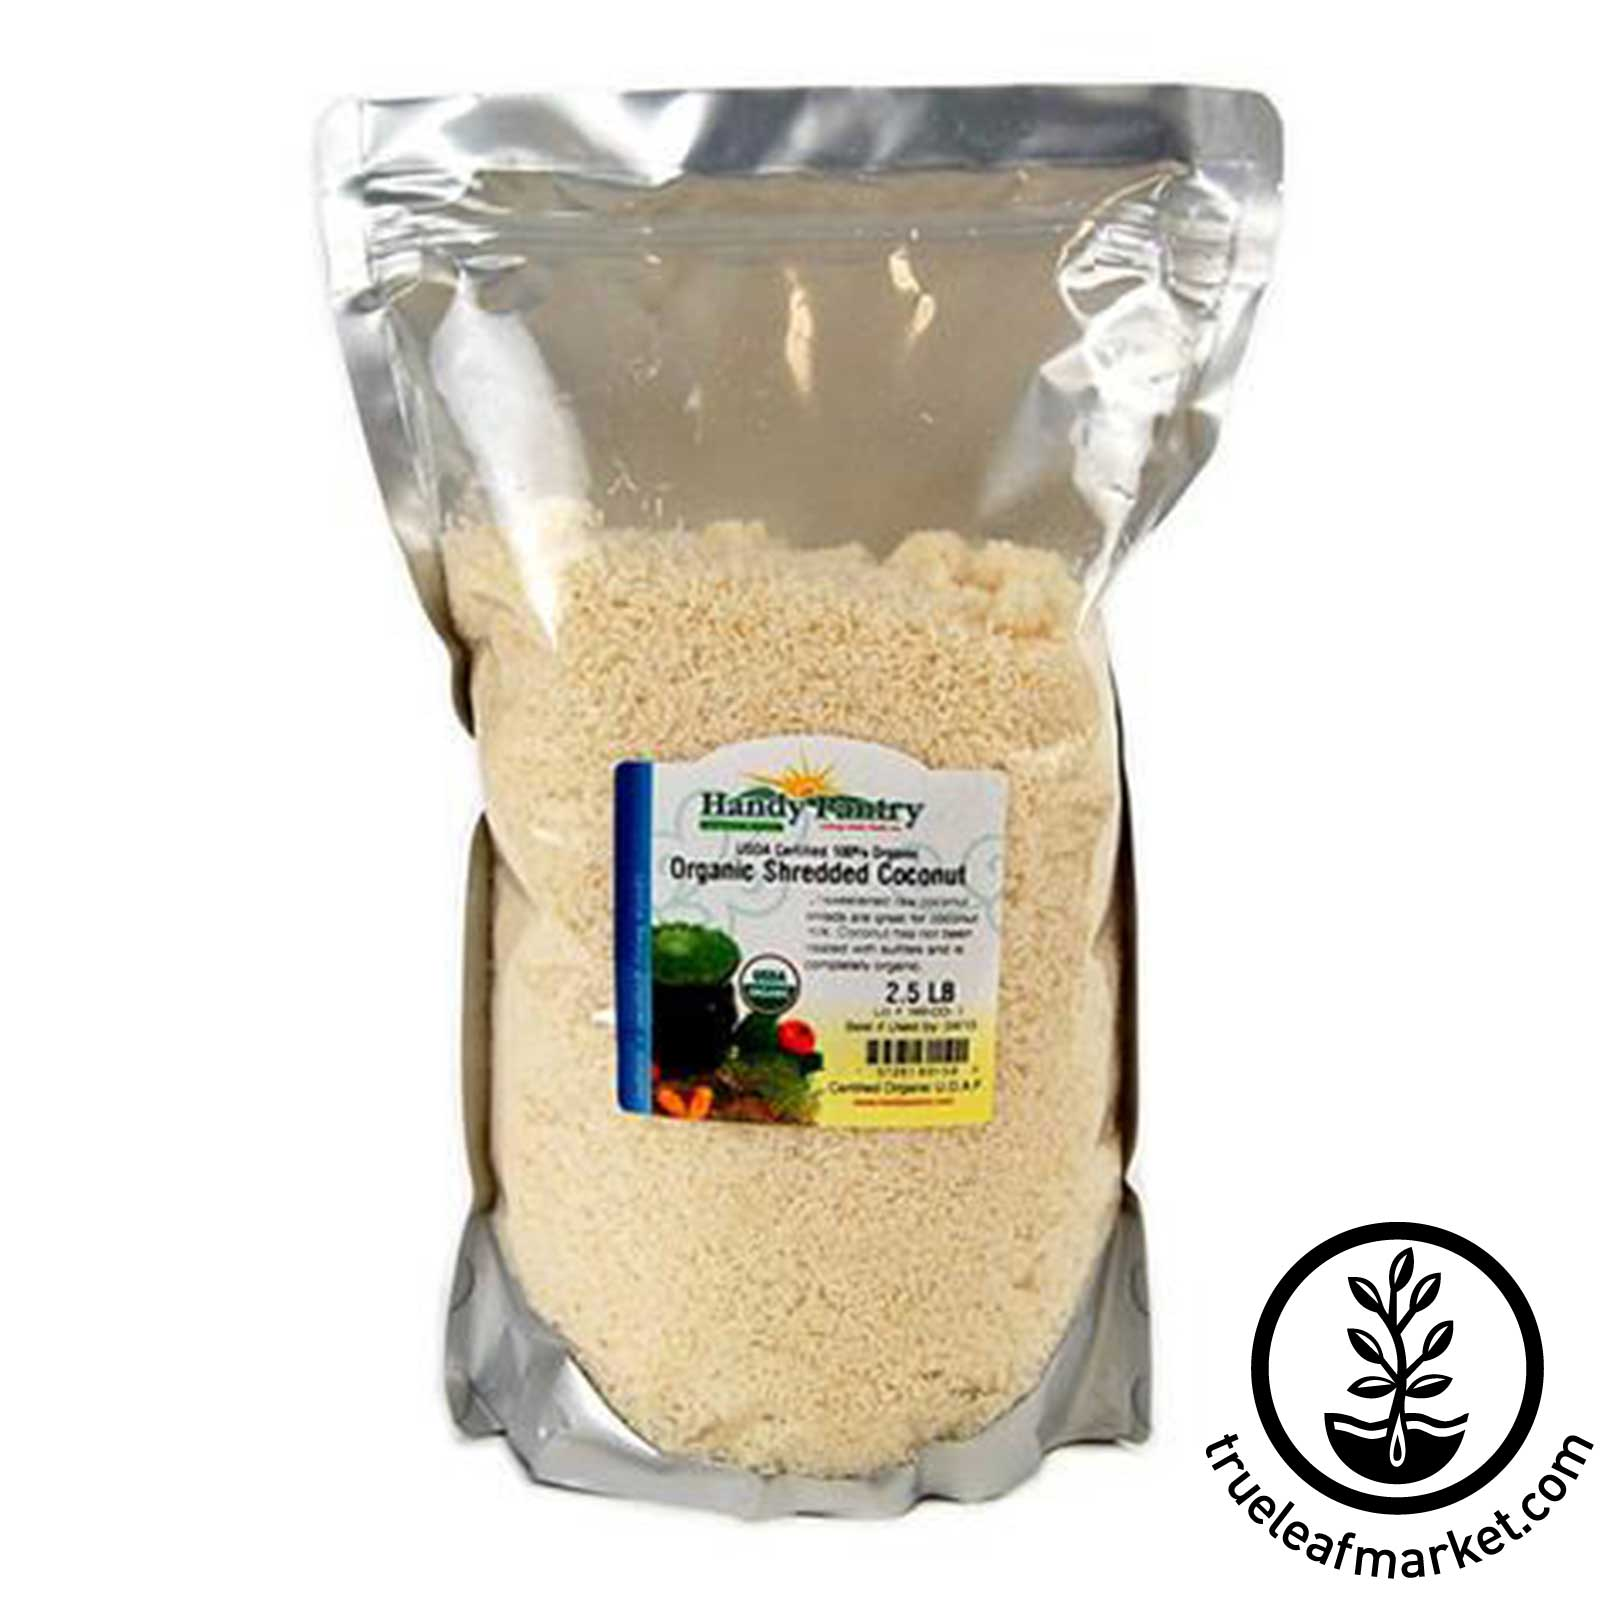 Organic Shredded Coconut - 2.5 lbs